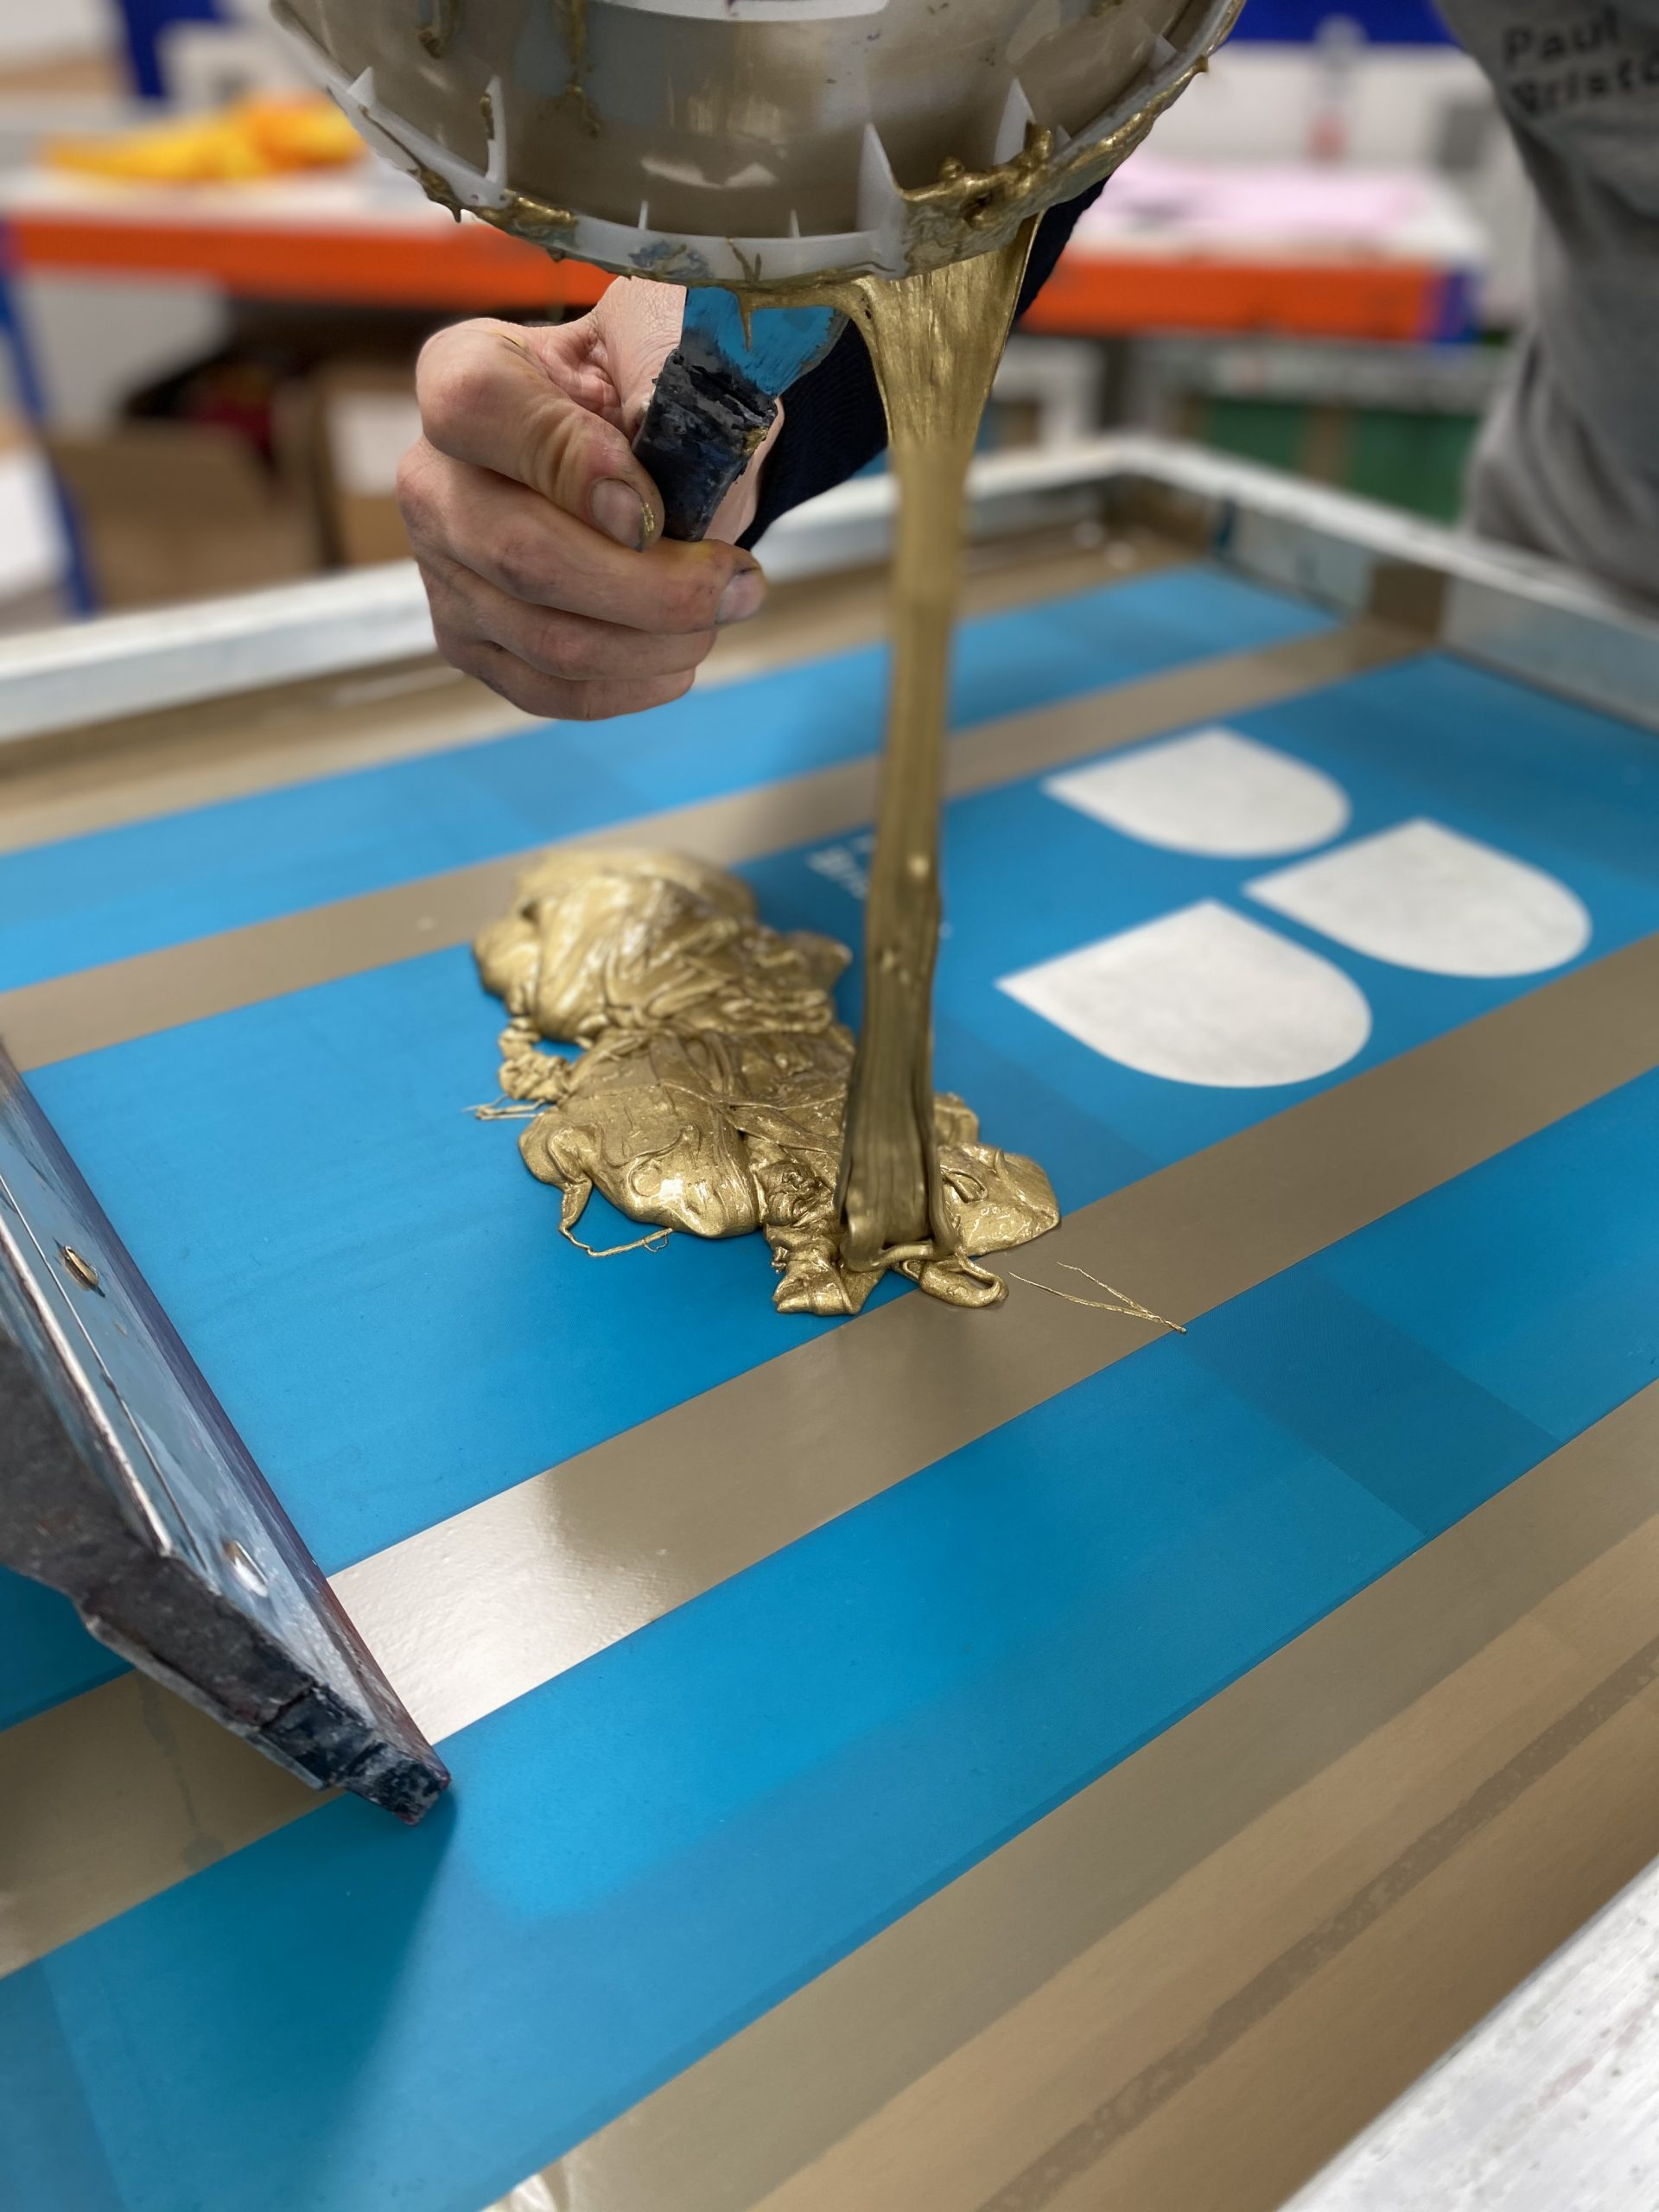 Metallic ink being put into a Paul Brisotw branded screen